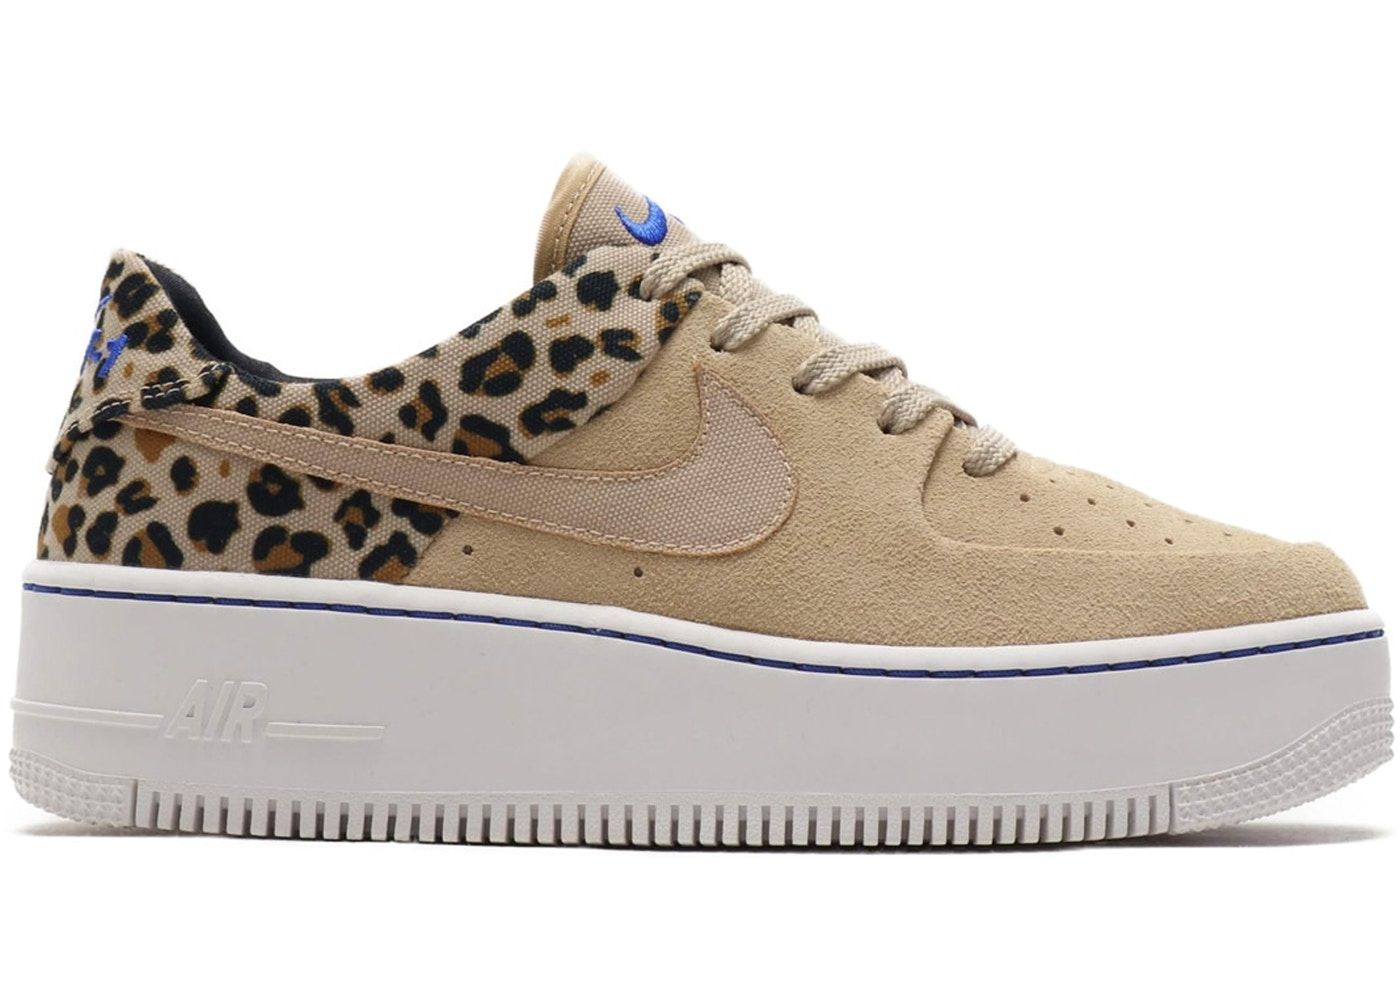 1 Air Animal Force Packw Low Sage vn8OwN0m